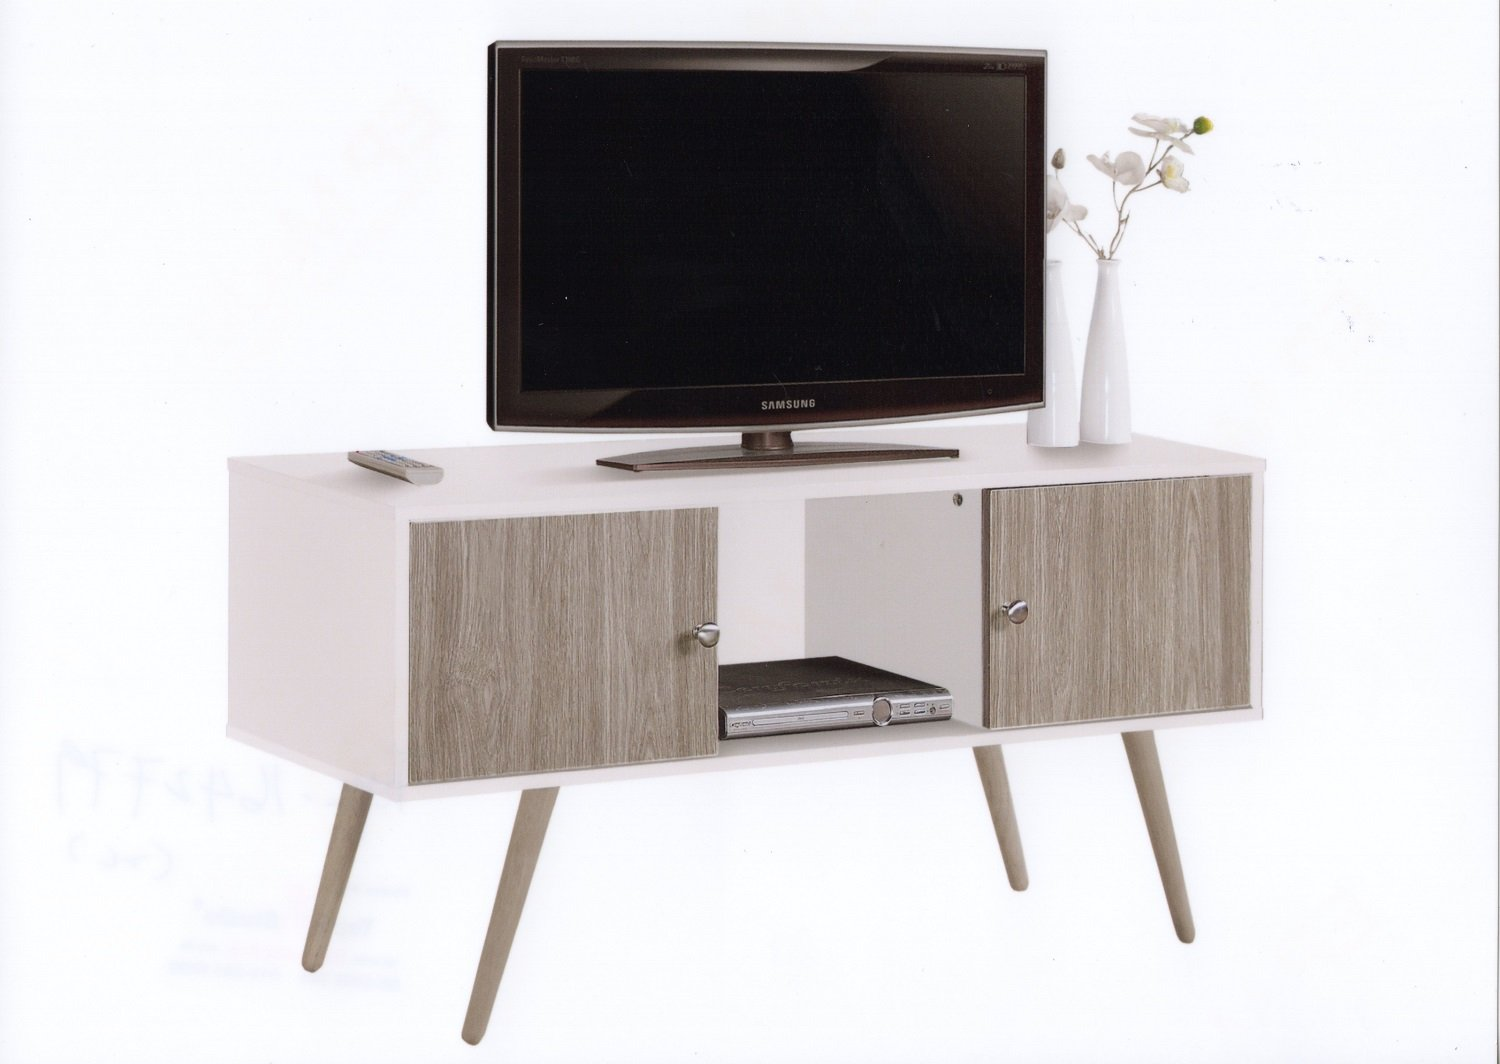 Hodedah Retro Style TV Stand with Two Storage Doors, and Solid Wood Legs, White by HODEDAH IMPORT